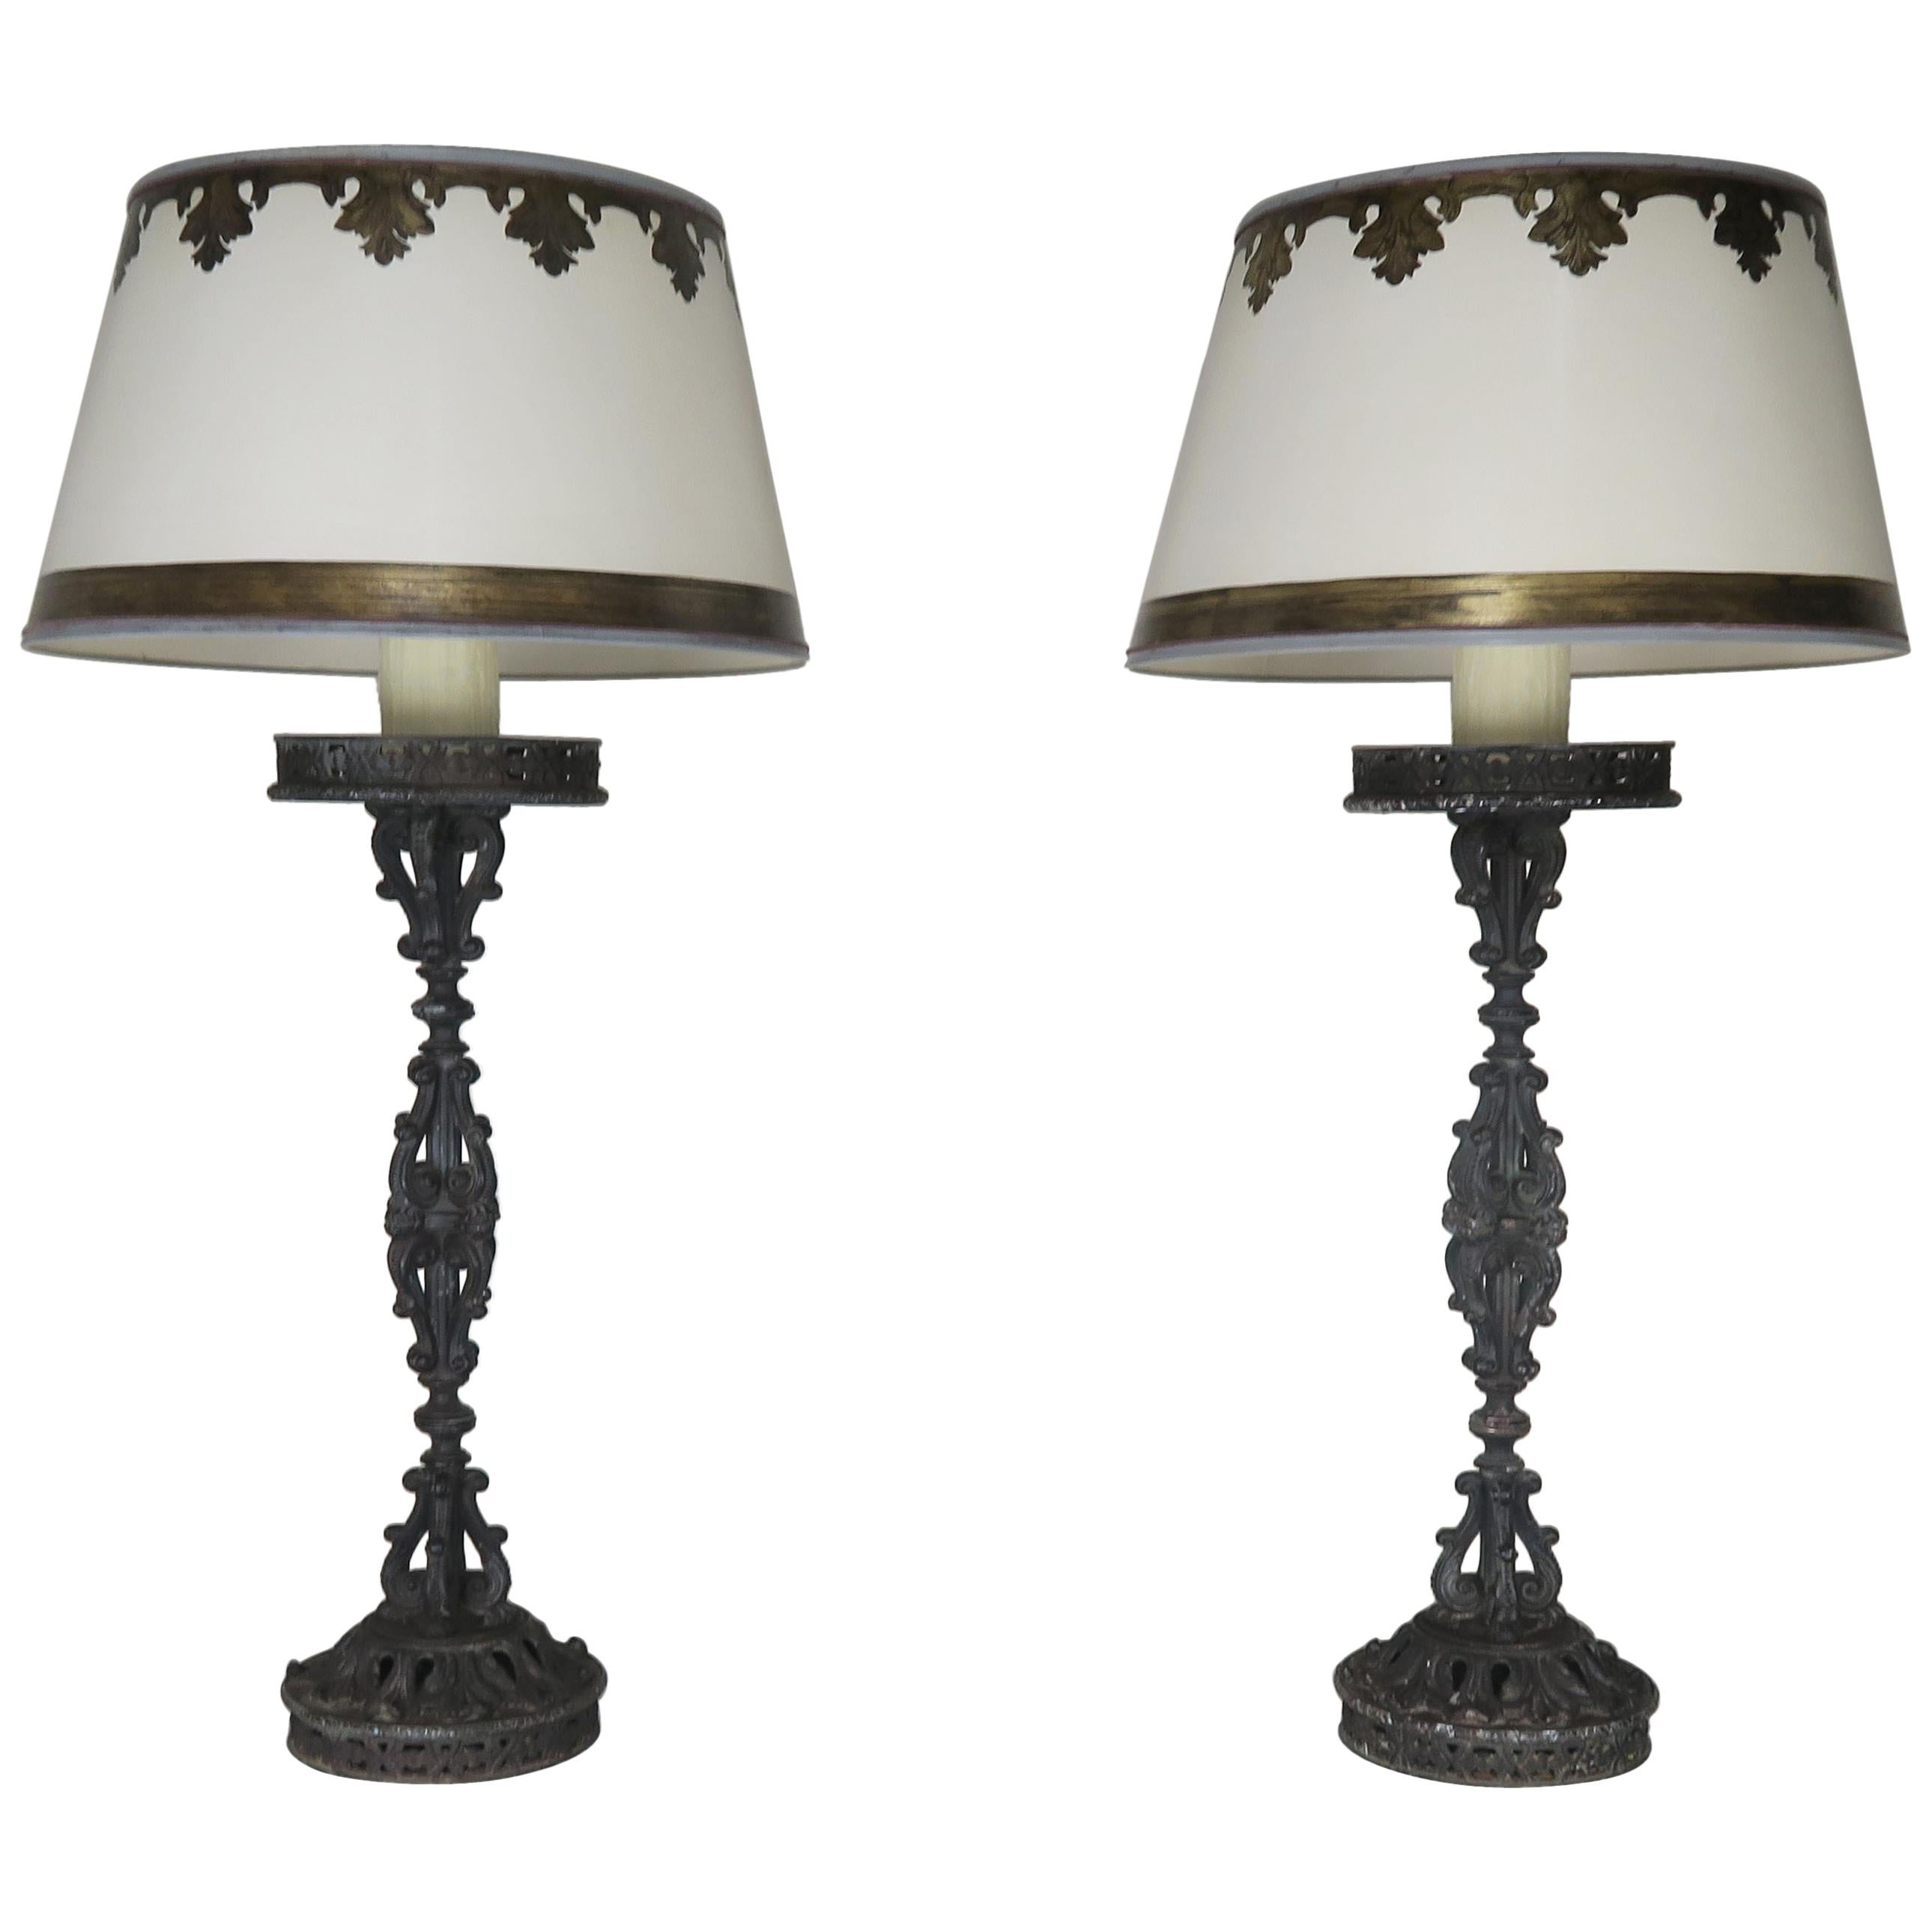 Cast Iron Spanish Candlestick Lamps with Custom Parchment Shades, Pair